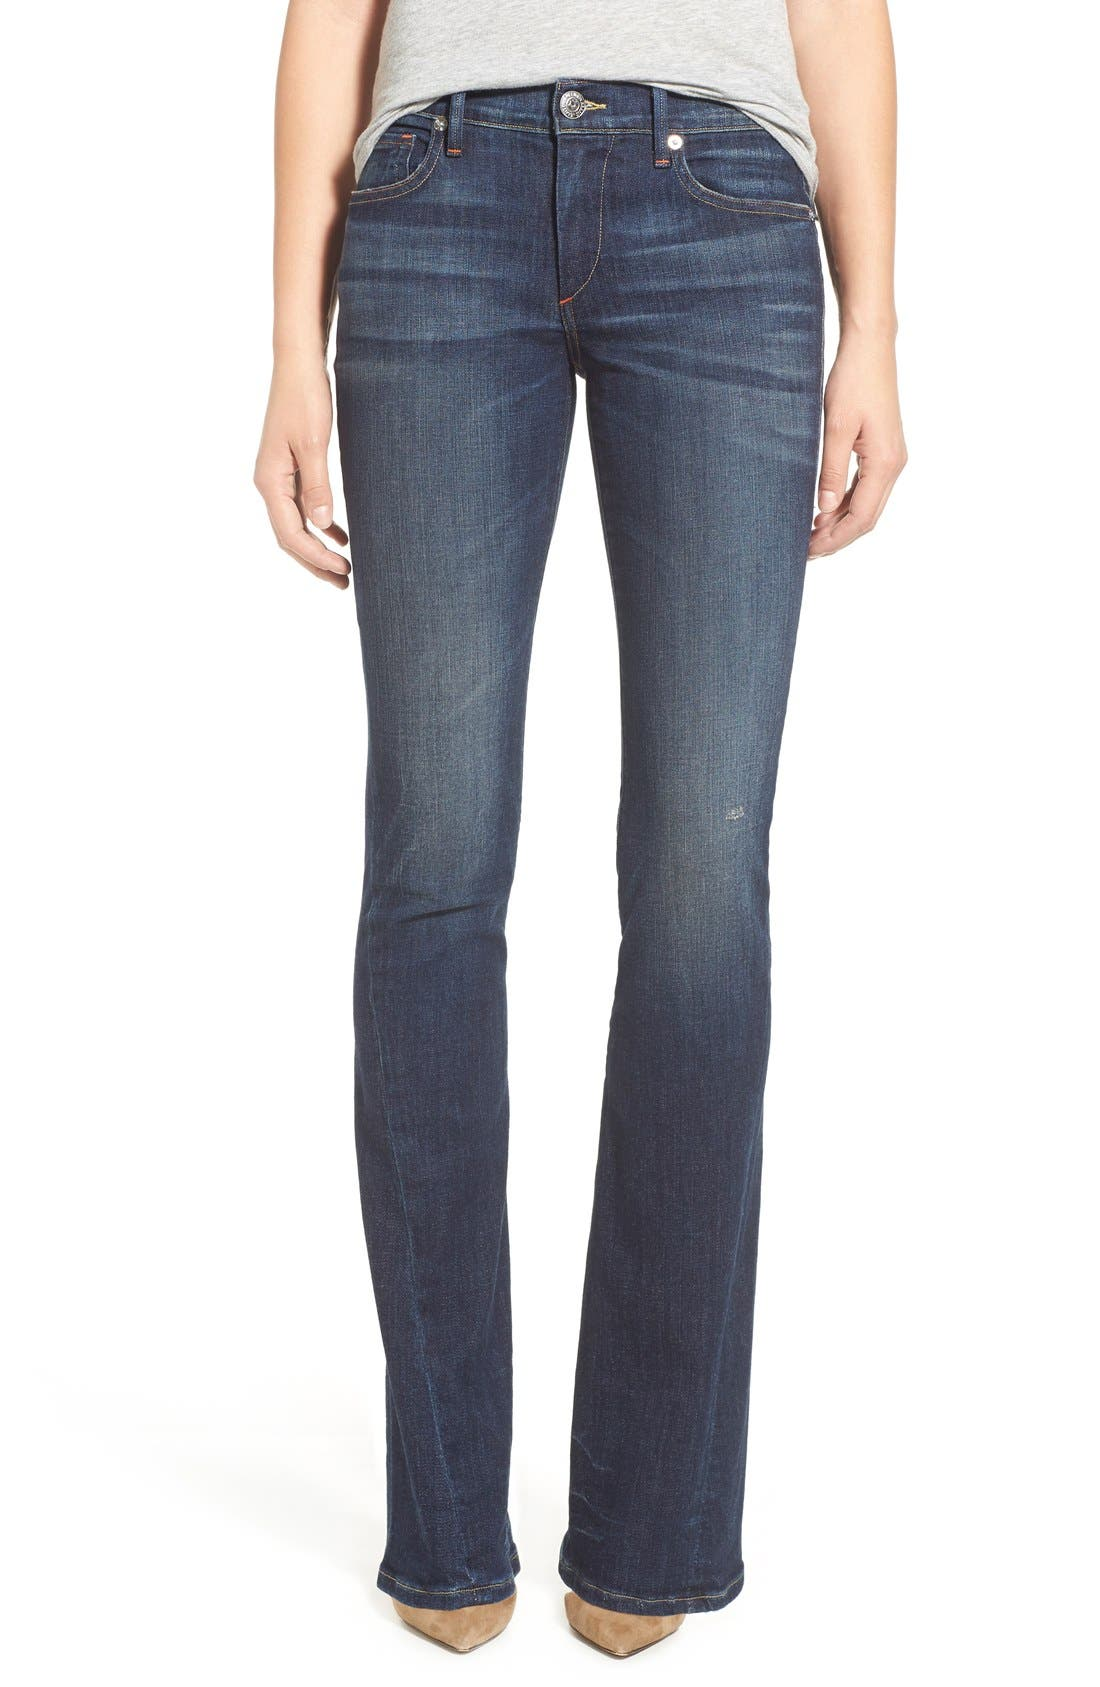 Main Image - True Religion Brand Jeans 'Becca' Twisted Seam Bootcut Jeans (Boyfriend Wash)